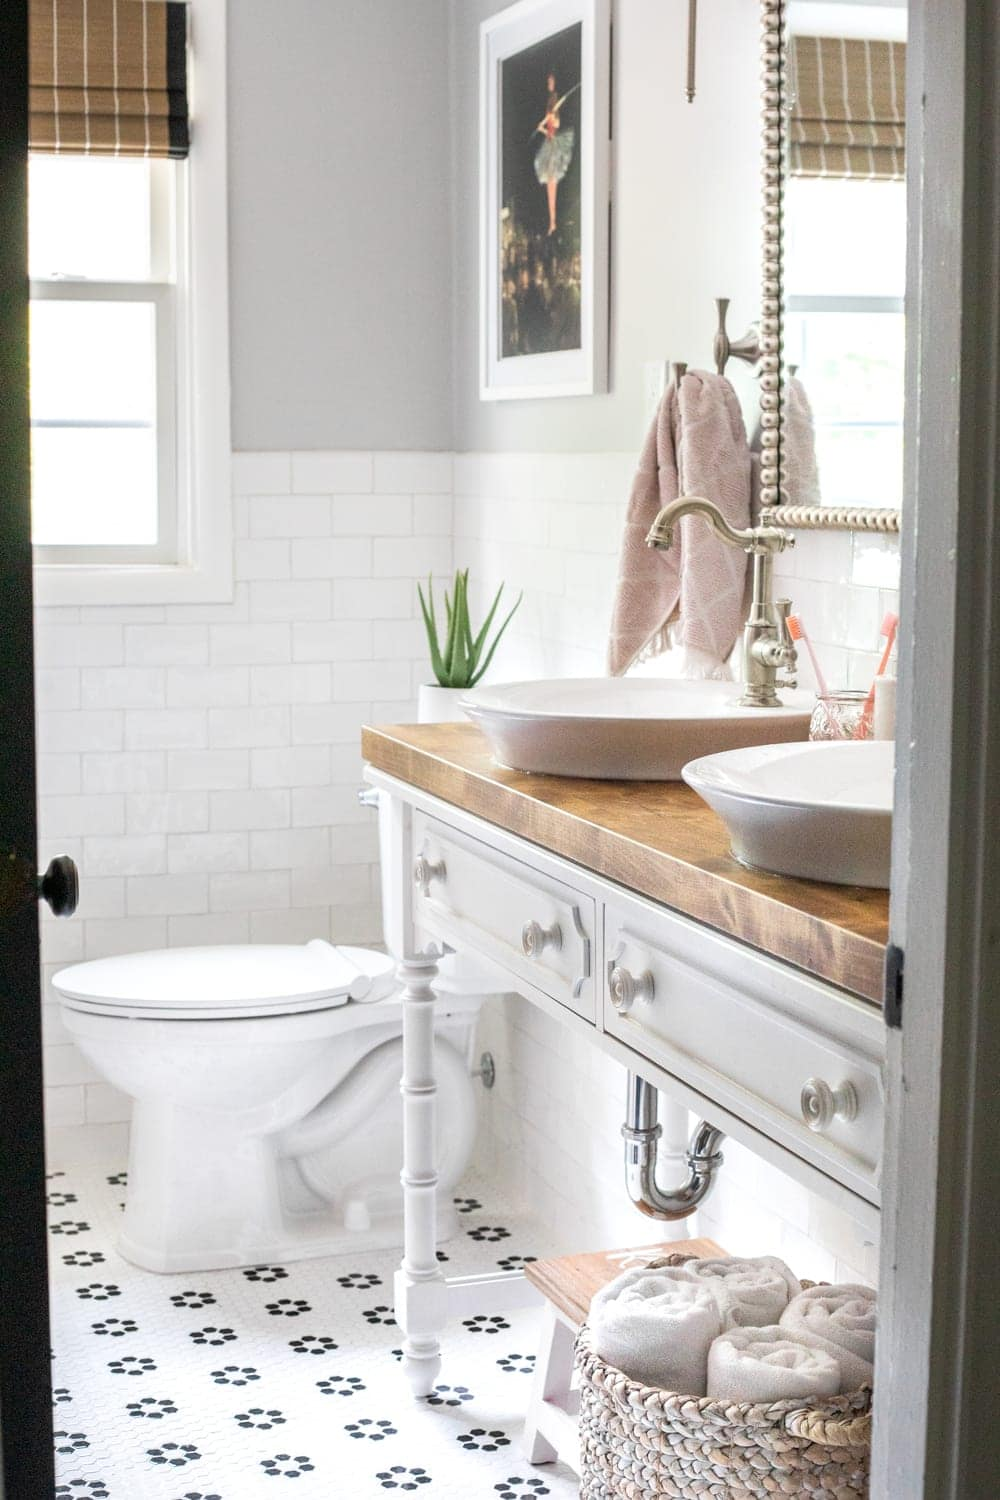 Girls' Bathroom Decor Details & Sources | Console table converted into a vanity with vessel sinks and retro flower floor tile